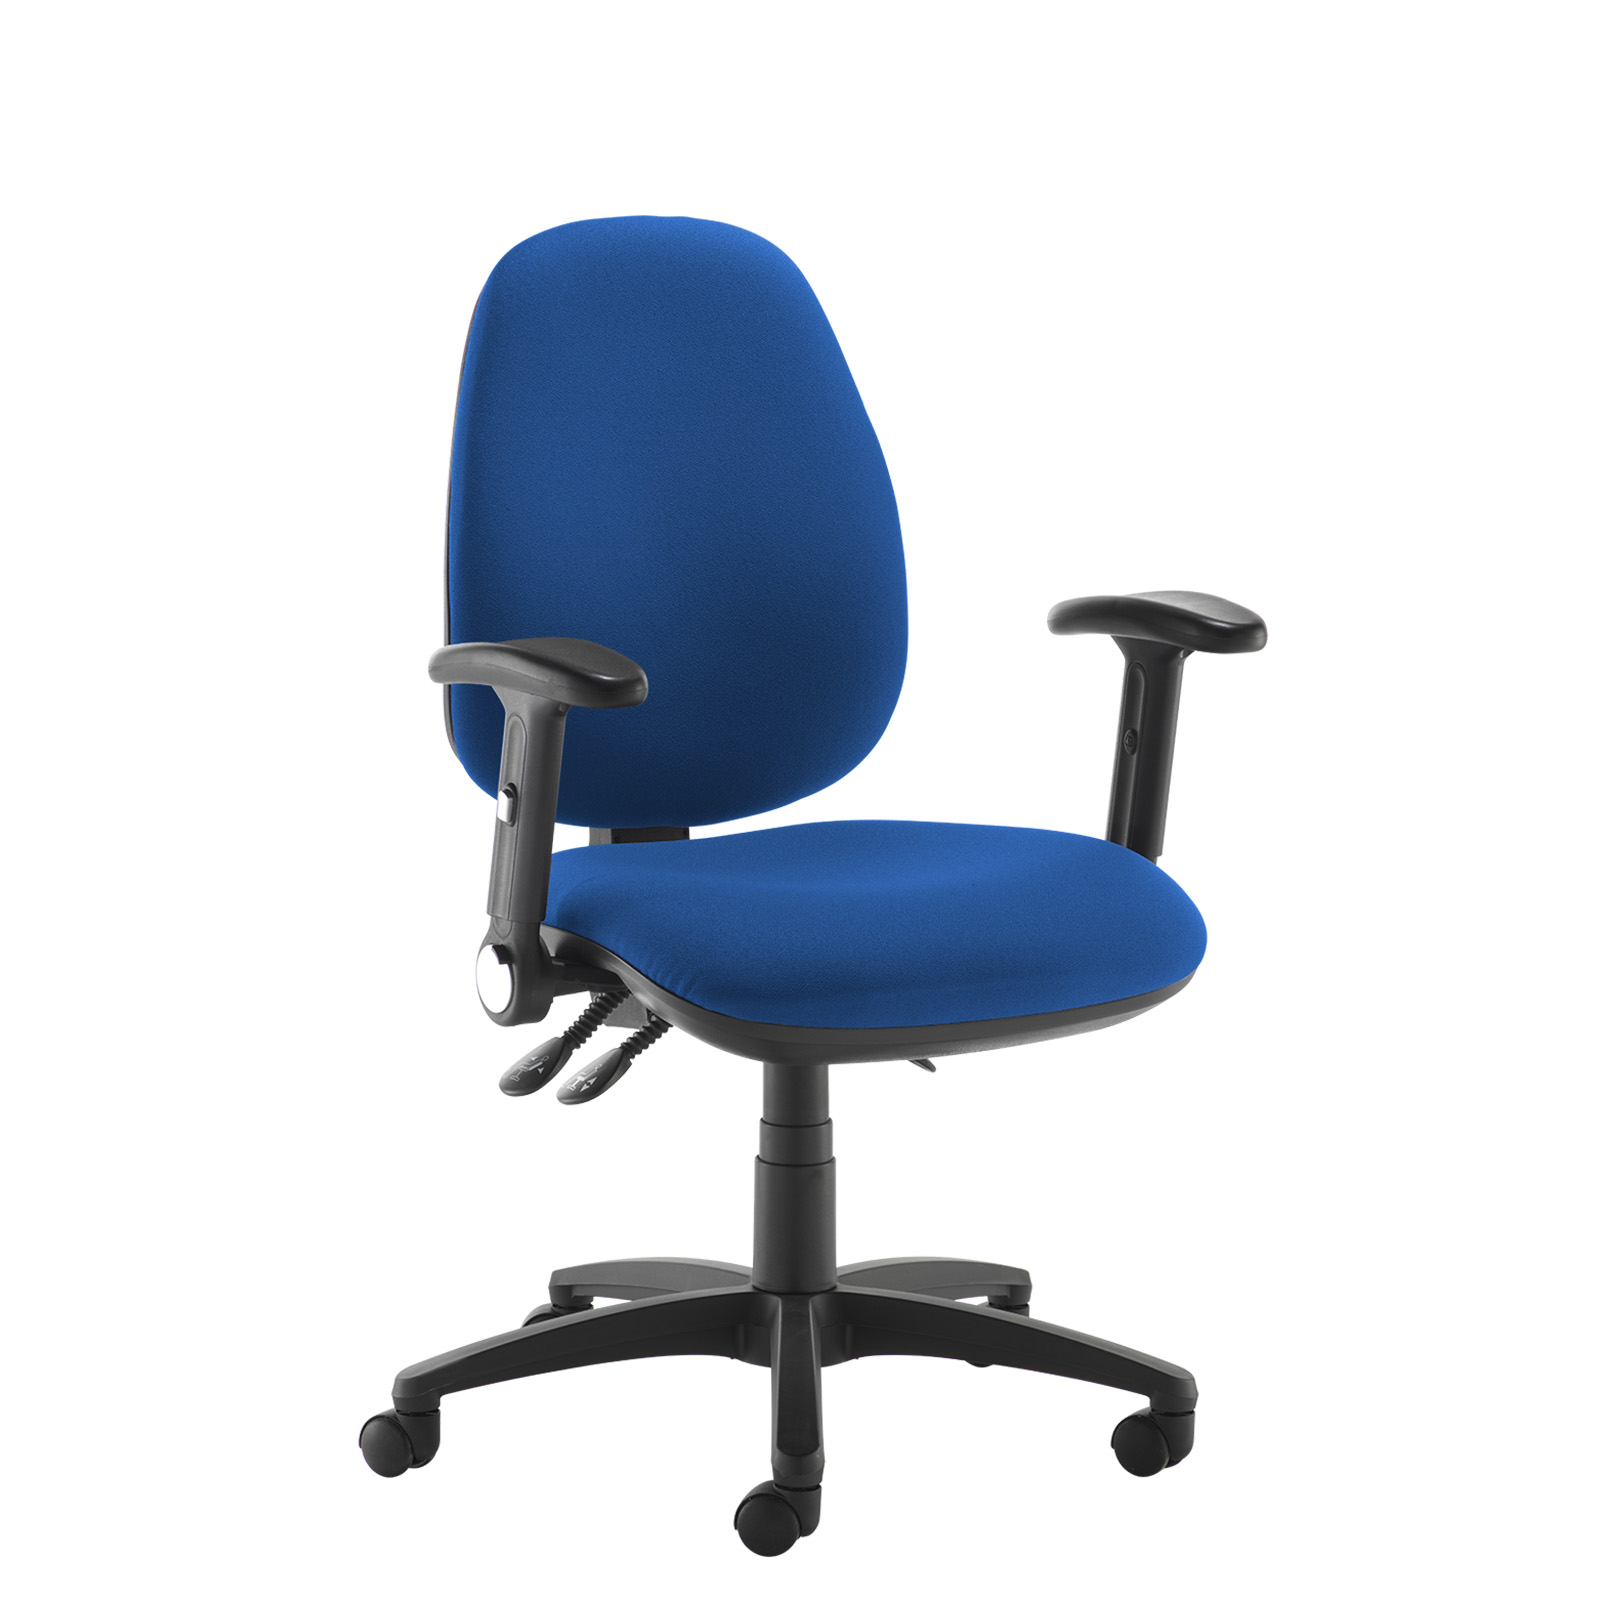 Desk Chairs Jota high back operator chair with folding arms - blue